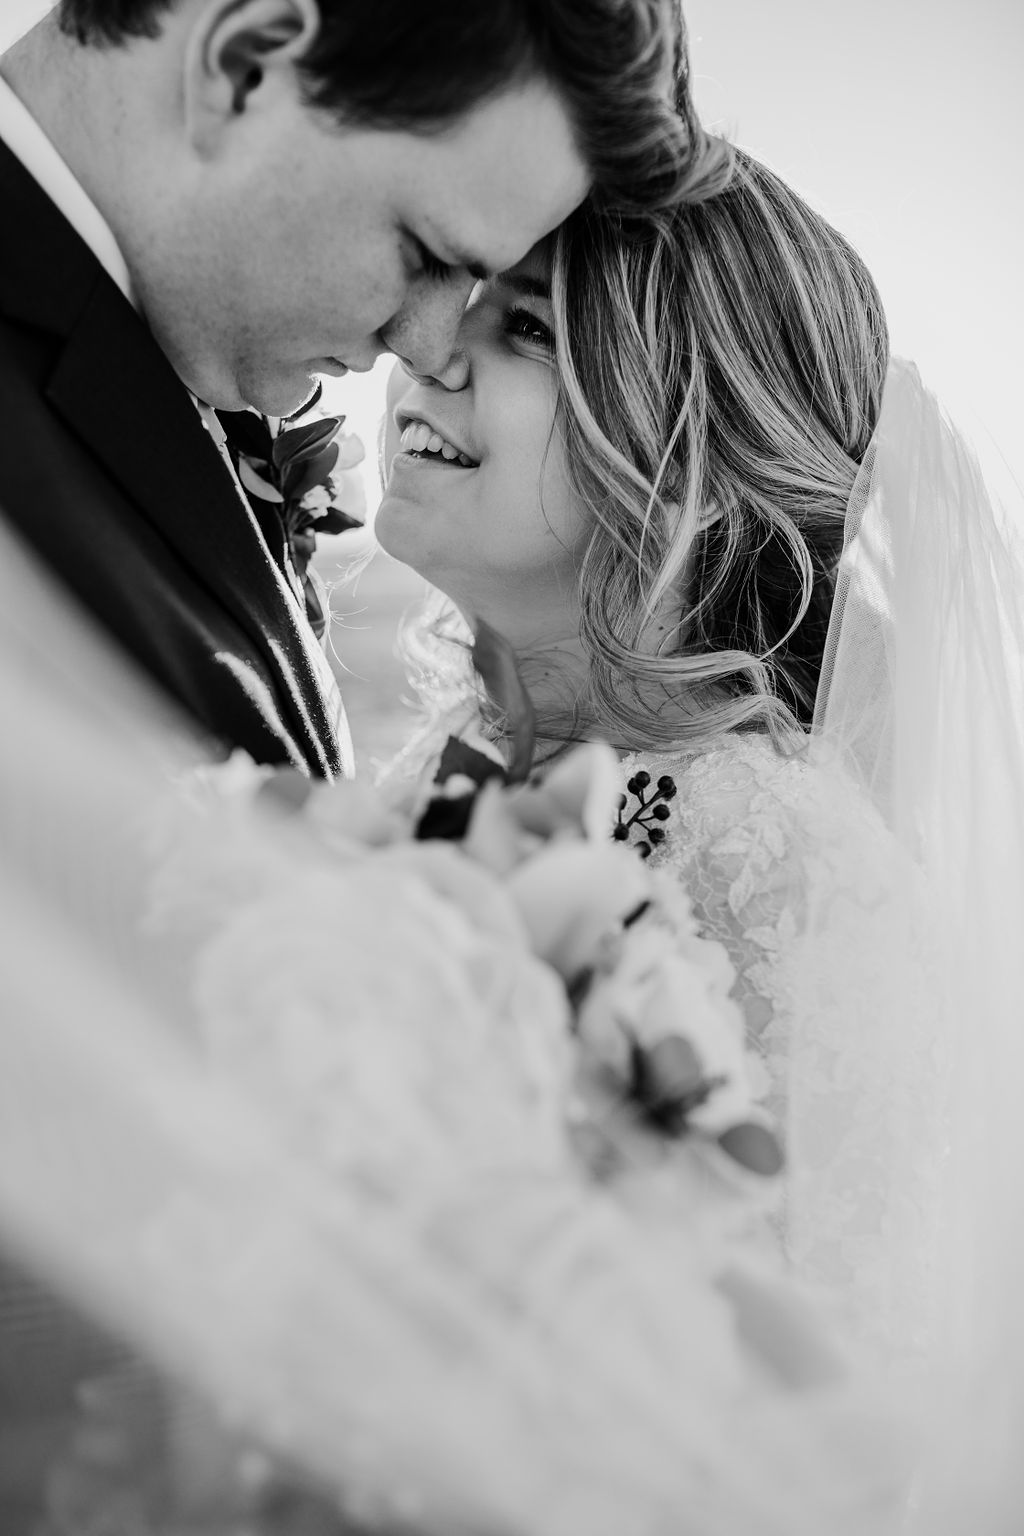 billowy veil smiling hugging romantic lace dress salt lake city wedding photographer